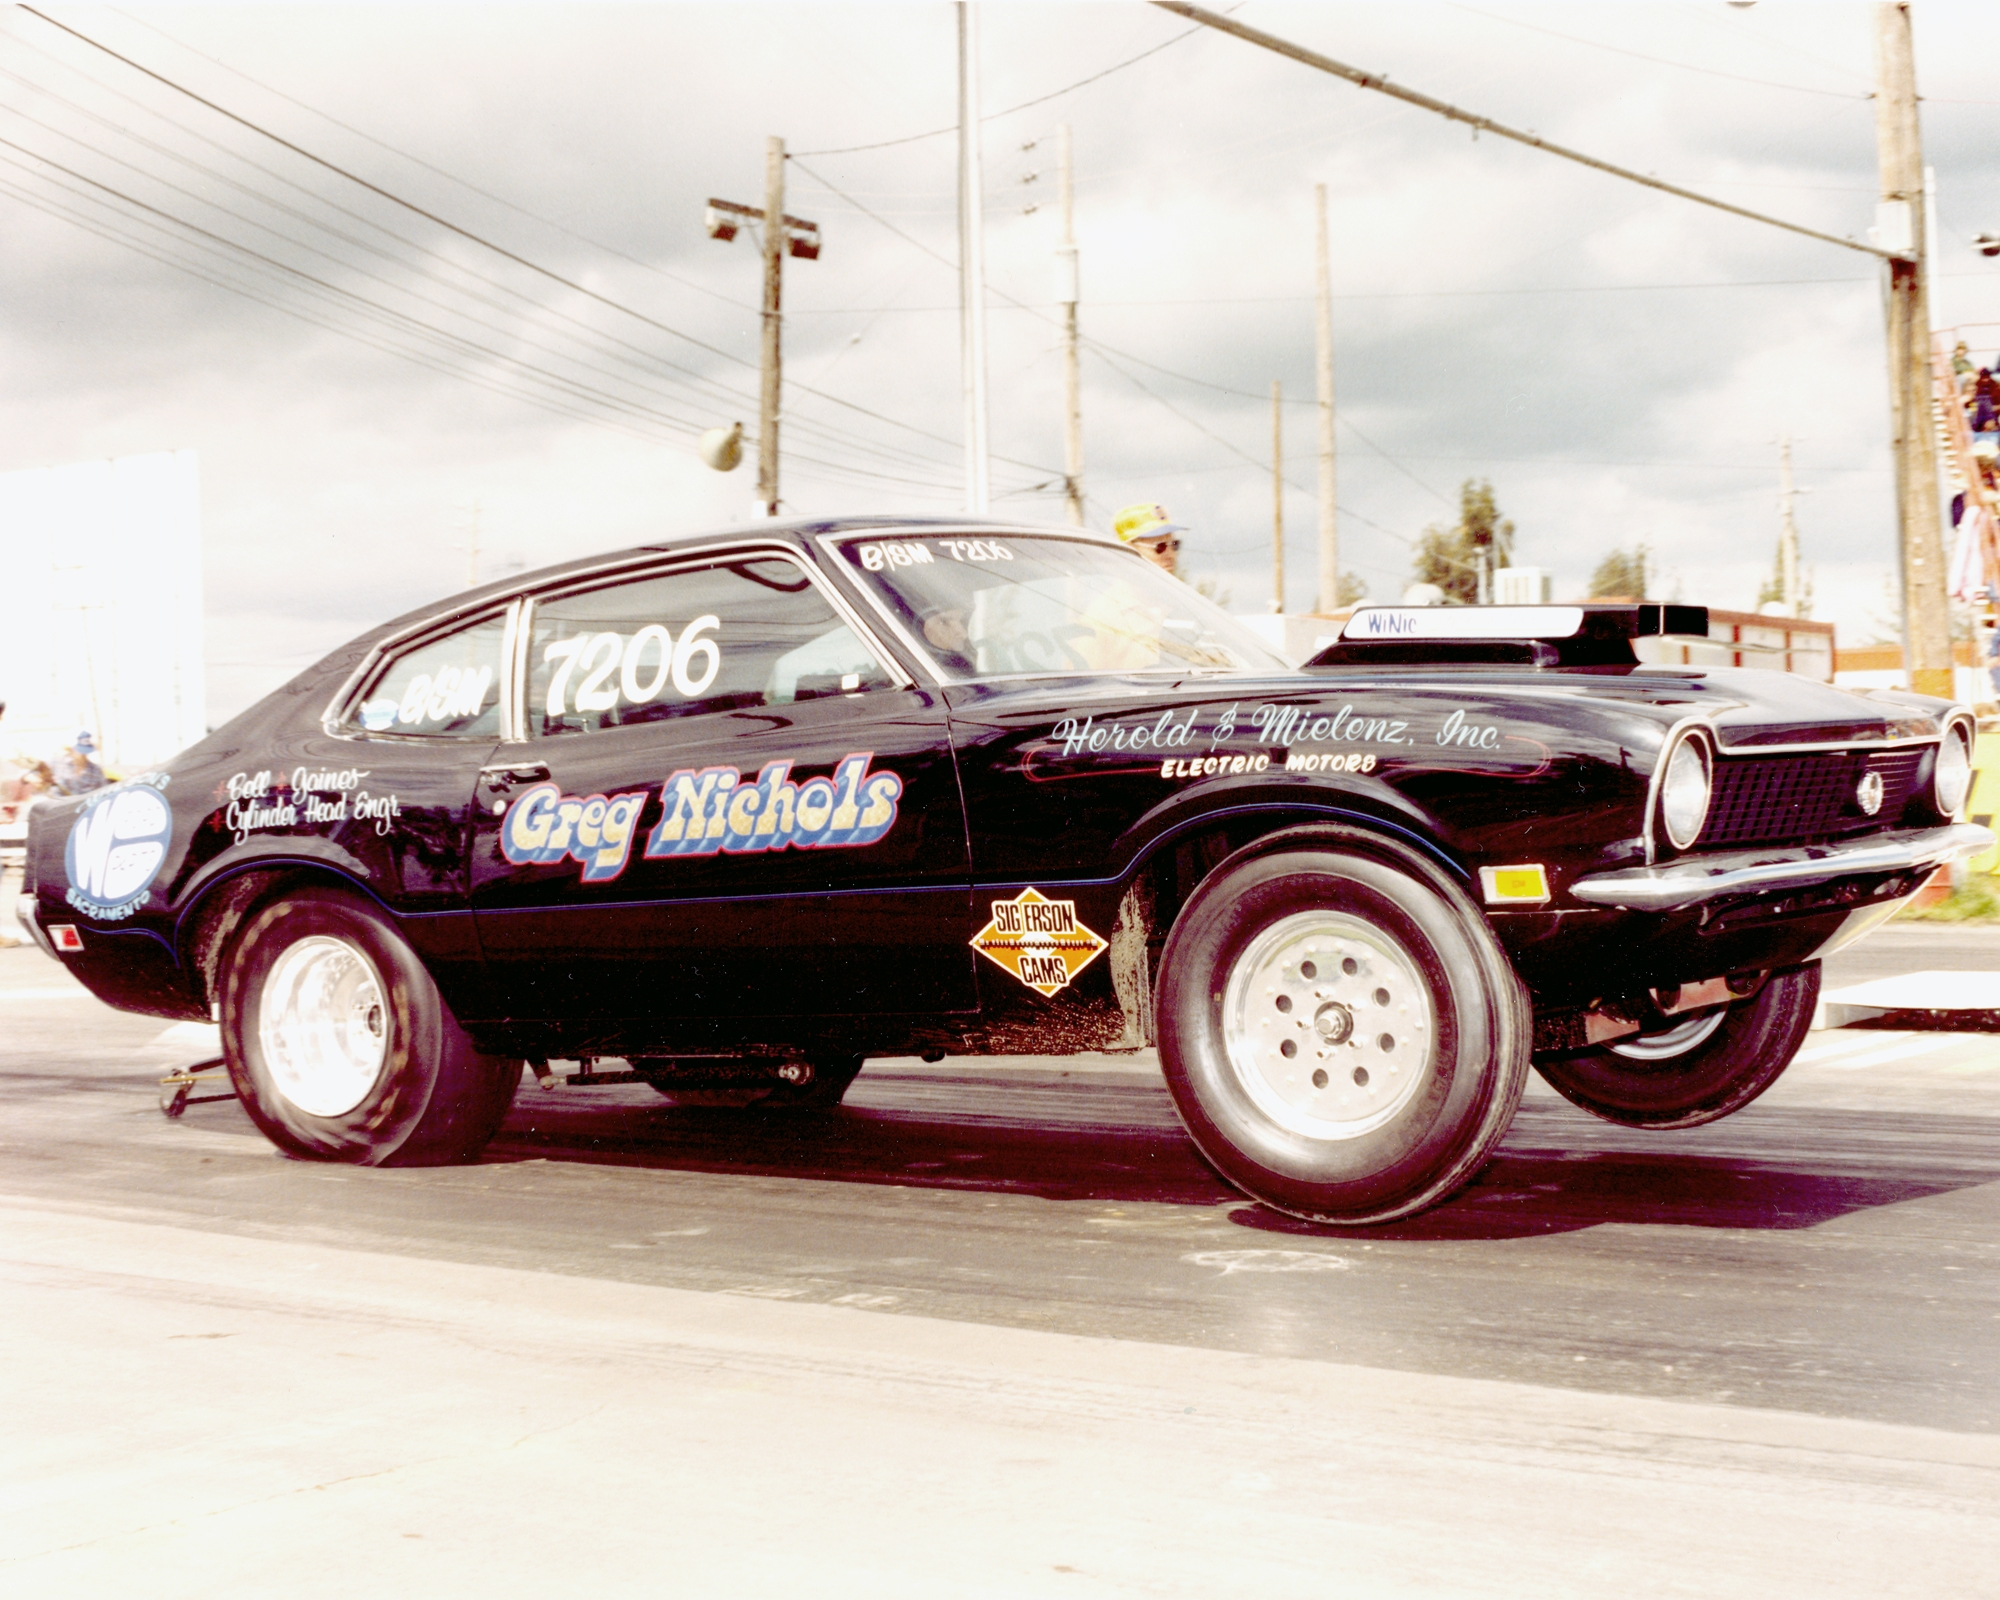 Click image for larger version  Name:Maverick wheel stand.JPG Views:91 Size:1.88 MB ID:198412